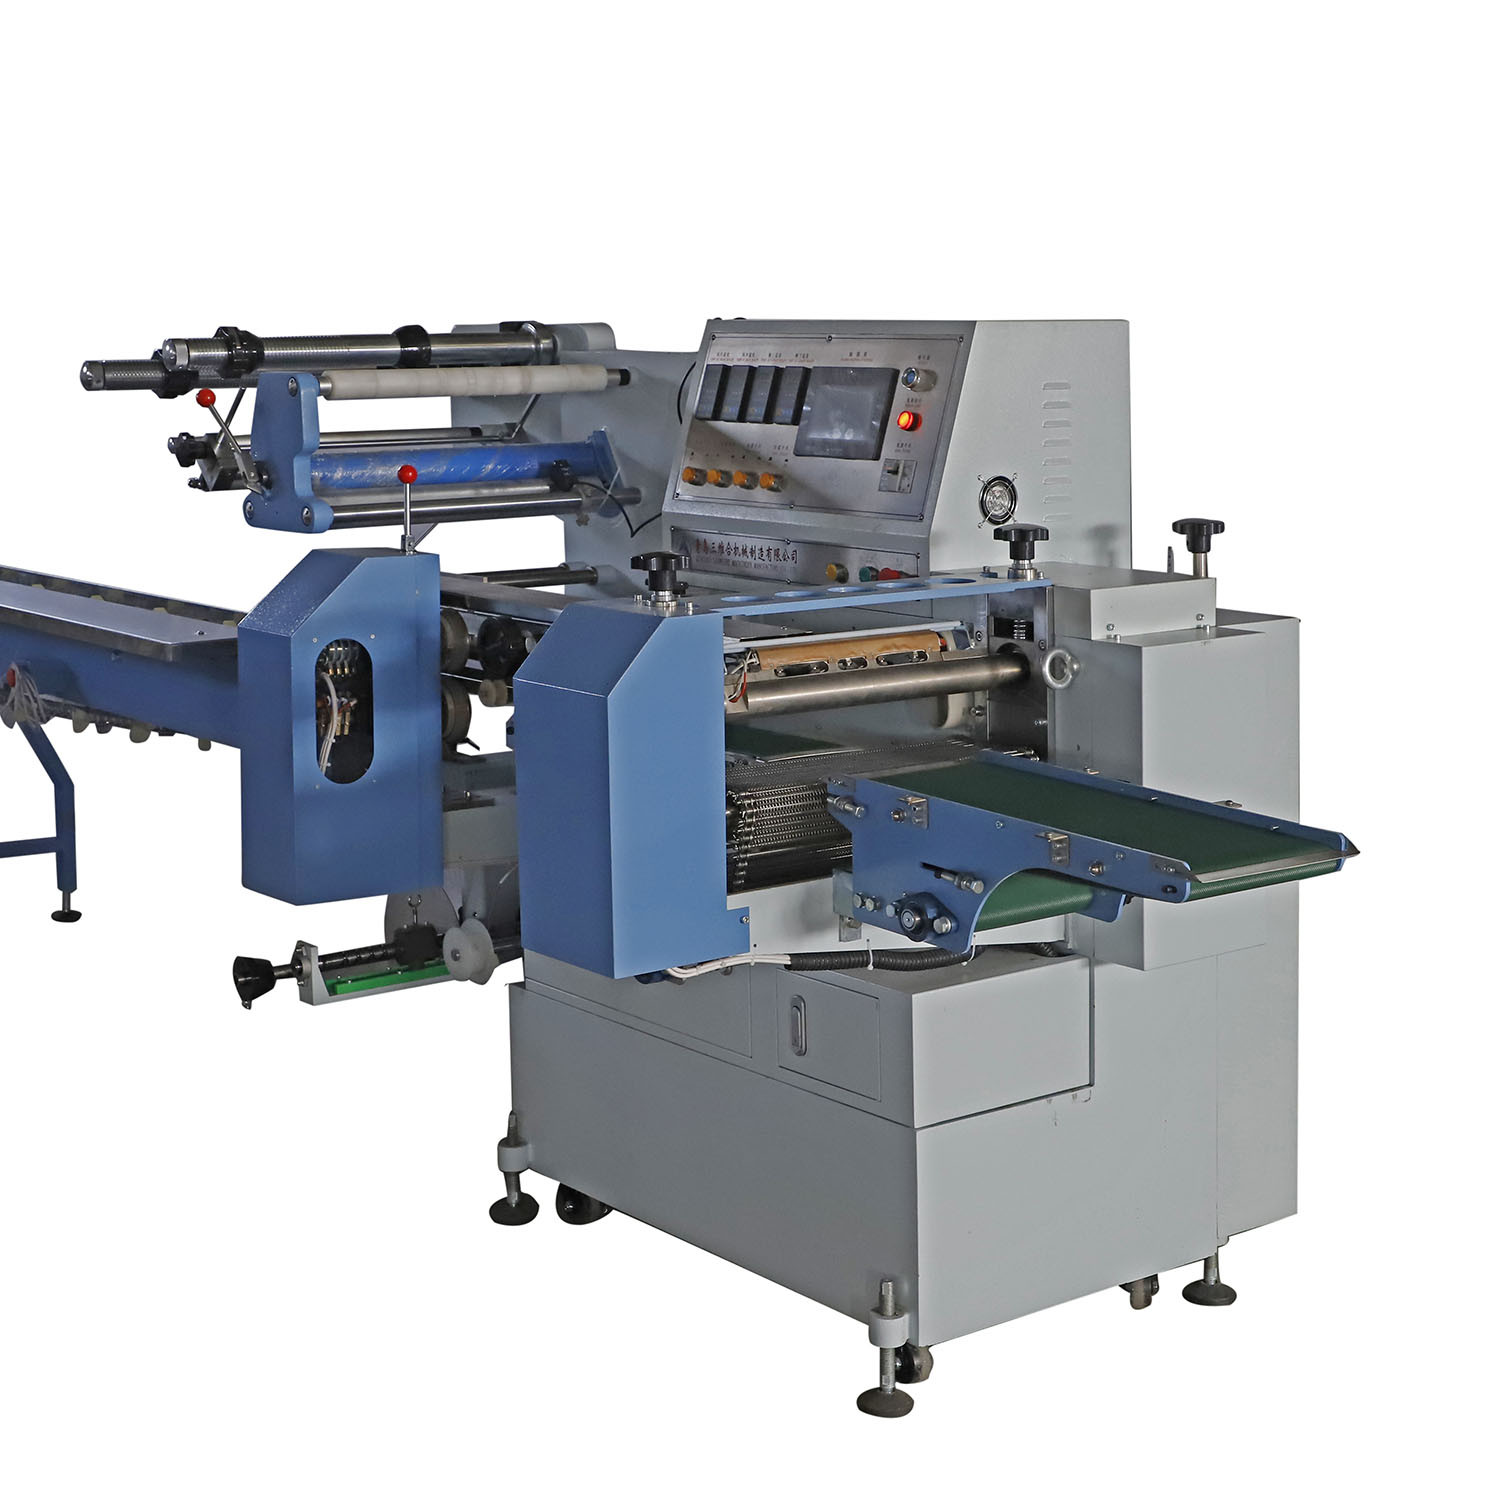 What is the packing speed of your flow packing machine?